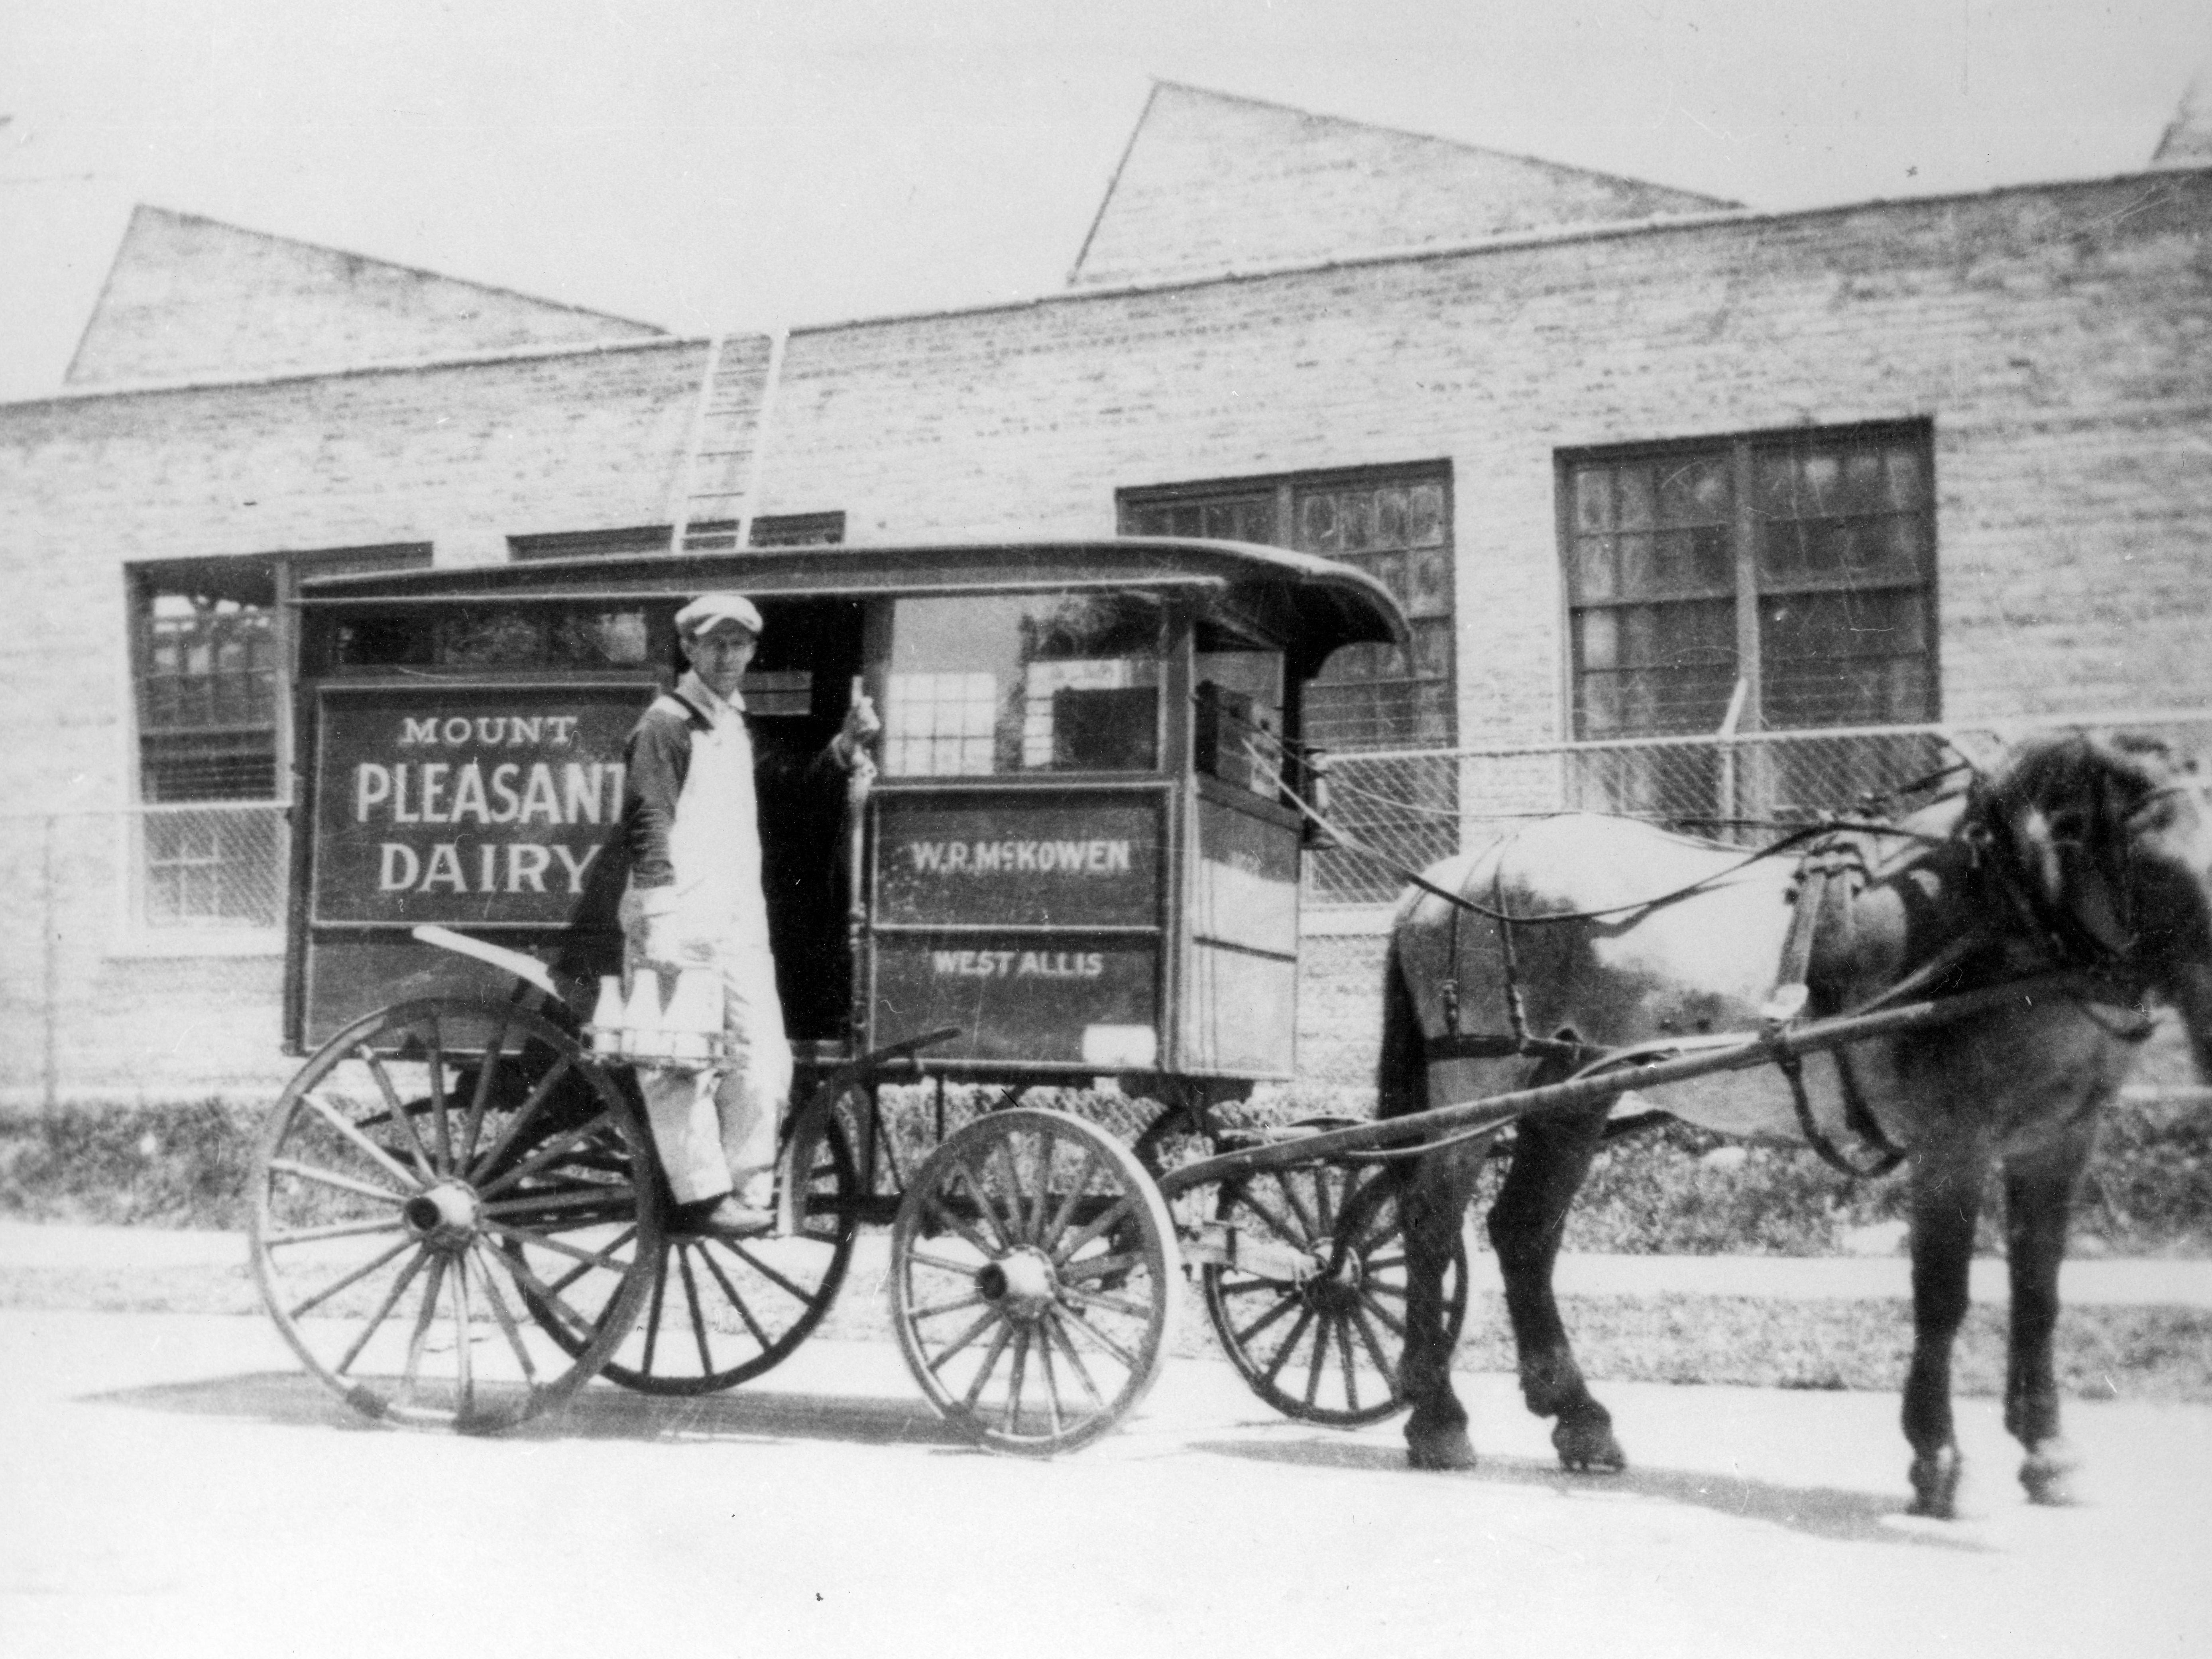 Circa 1919: Milkman Harry Pardun with his covered dairy delivery wagon and horse. The Wm. R. McKowen dairy business was at 67th Street and National Avenue. The dairy existed between 1913 and 1925.